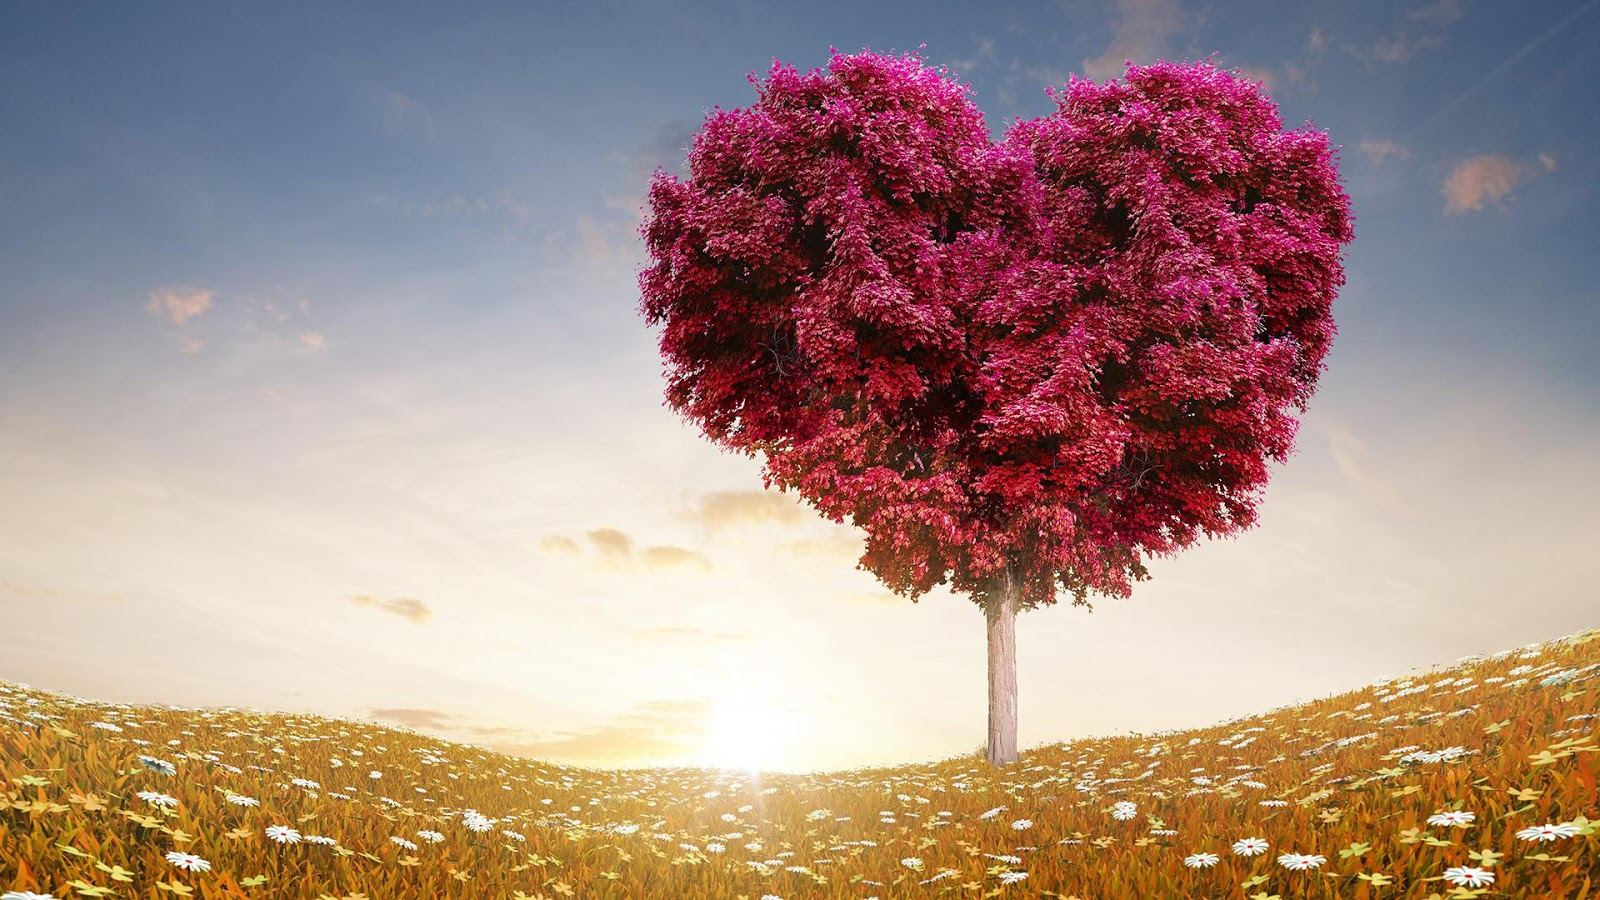 Love Tree Wallpapers : Love Tree Live Wallpaper - Android Apps on Google Play